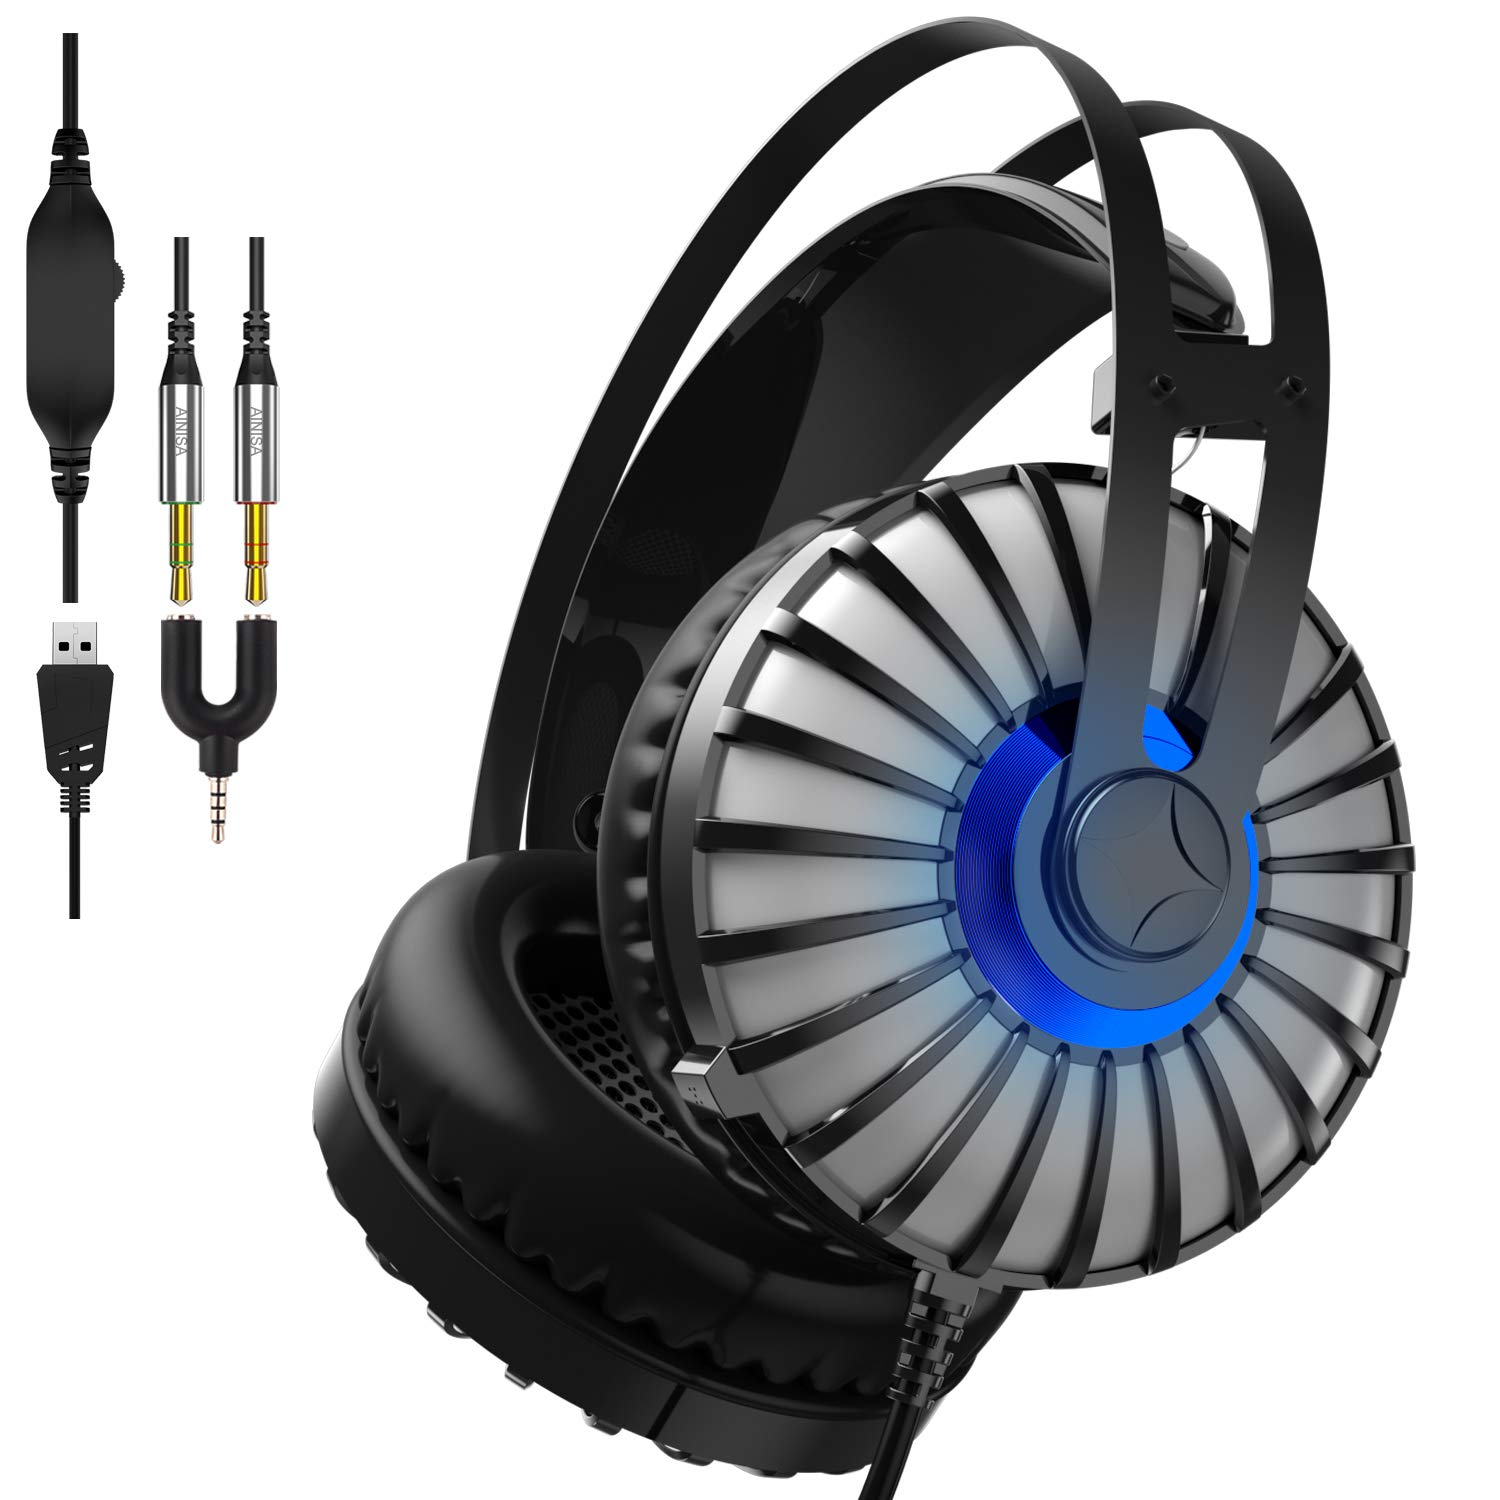 Gaming Headset compatible PS4, Xbox One, Nintendo Switch, PC, etc. Stereo Surround Sound Over-Ear Wired Gaming Headset with LED light, Noise-Canceling Microphone by AINISA